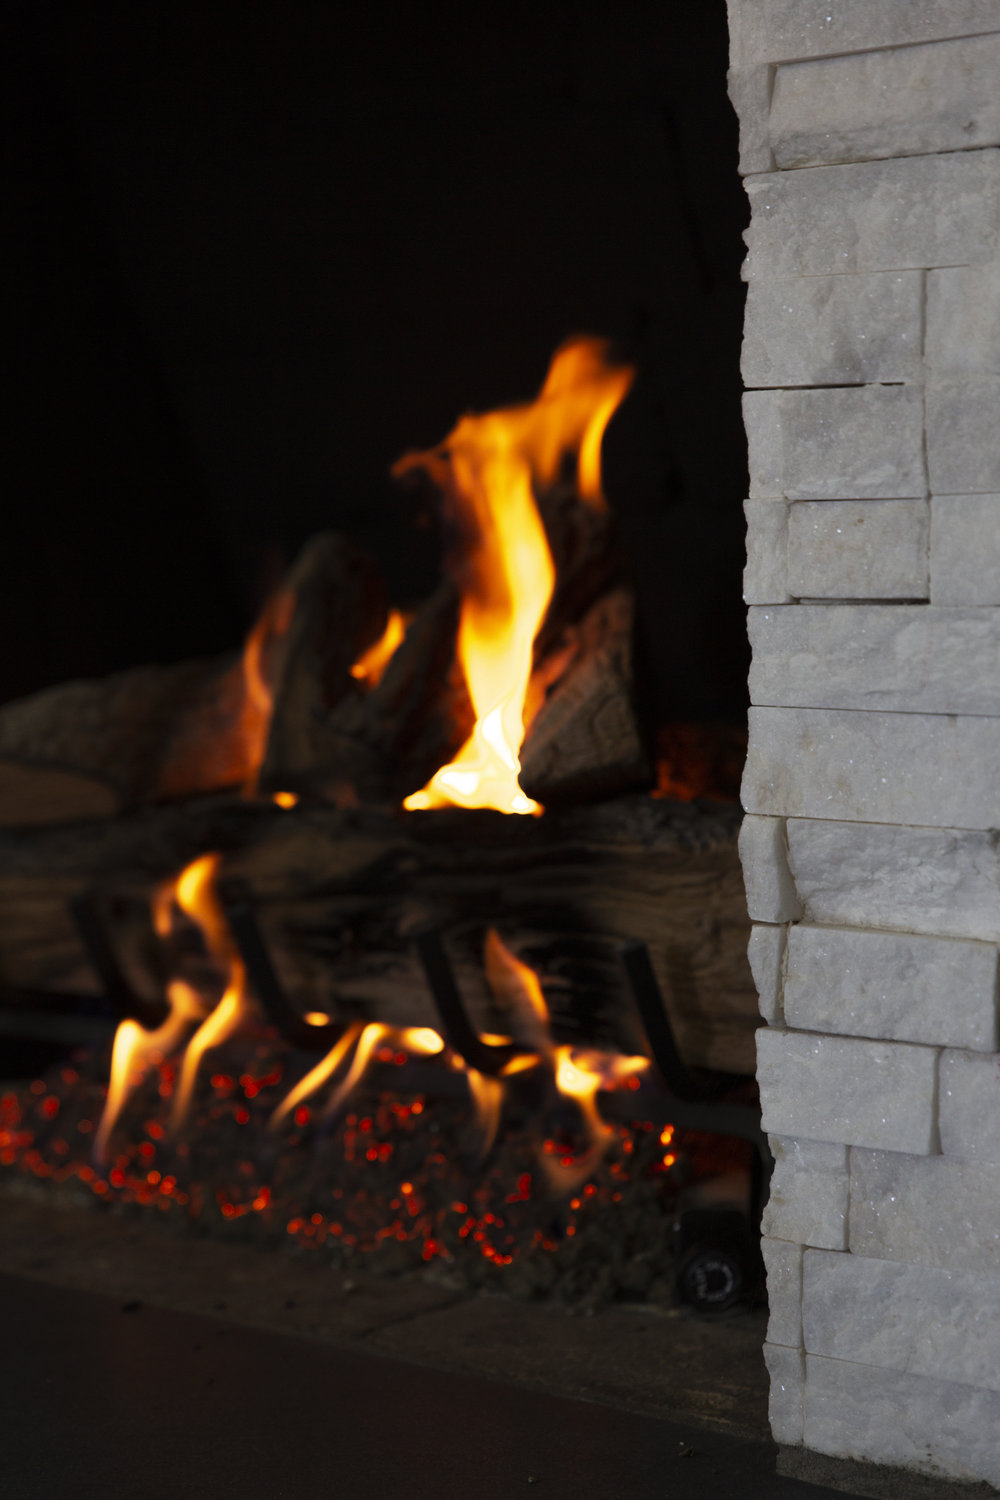 38 fireplace lit 3.jpg